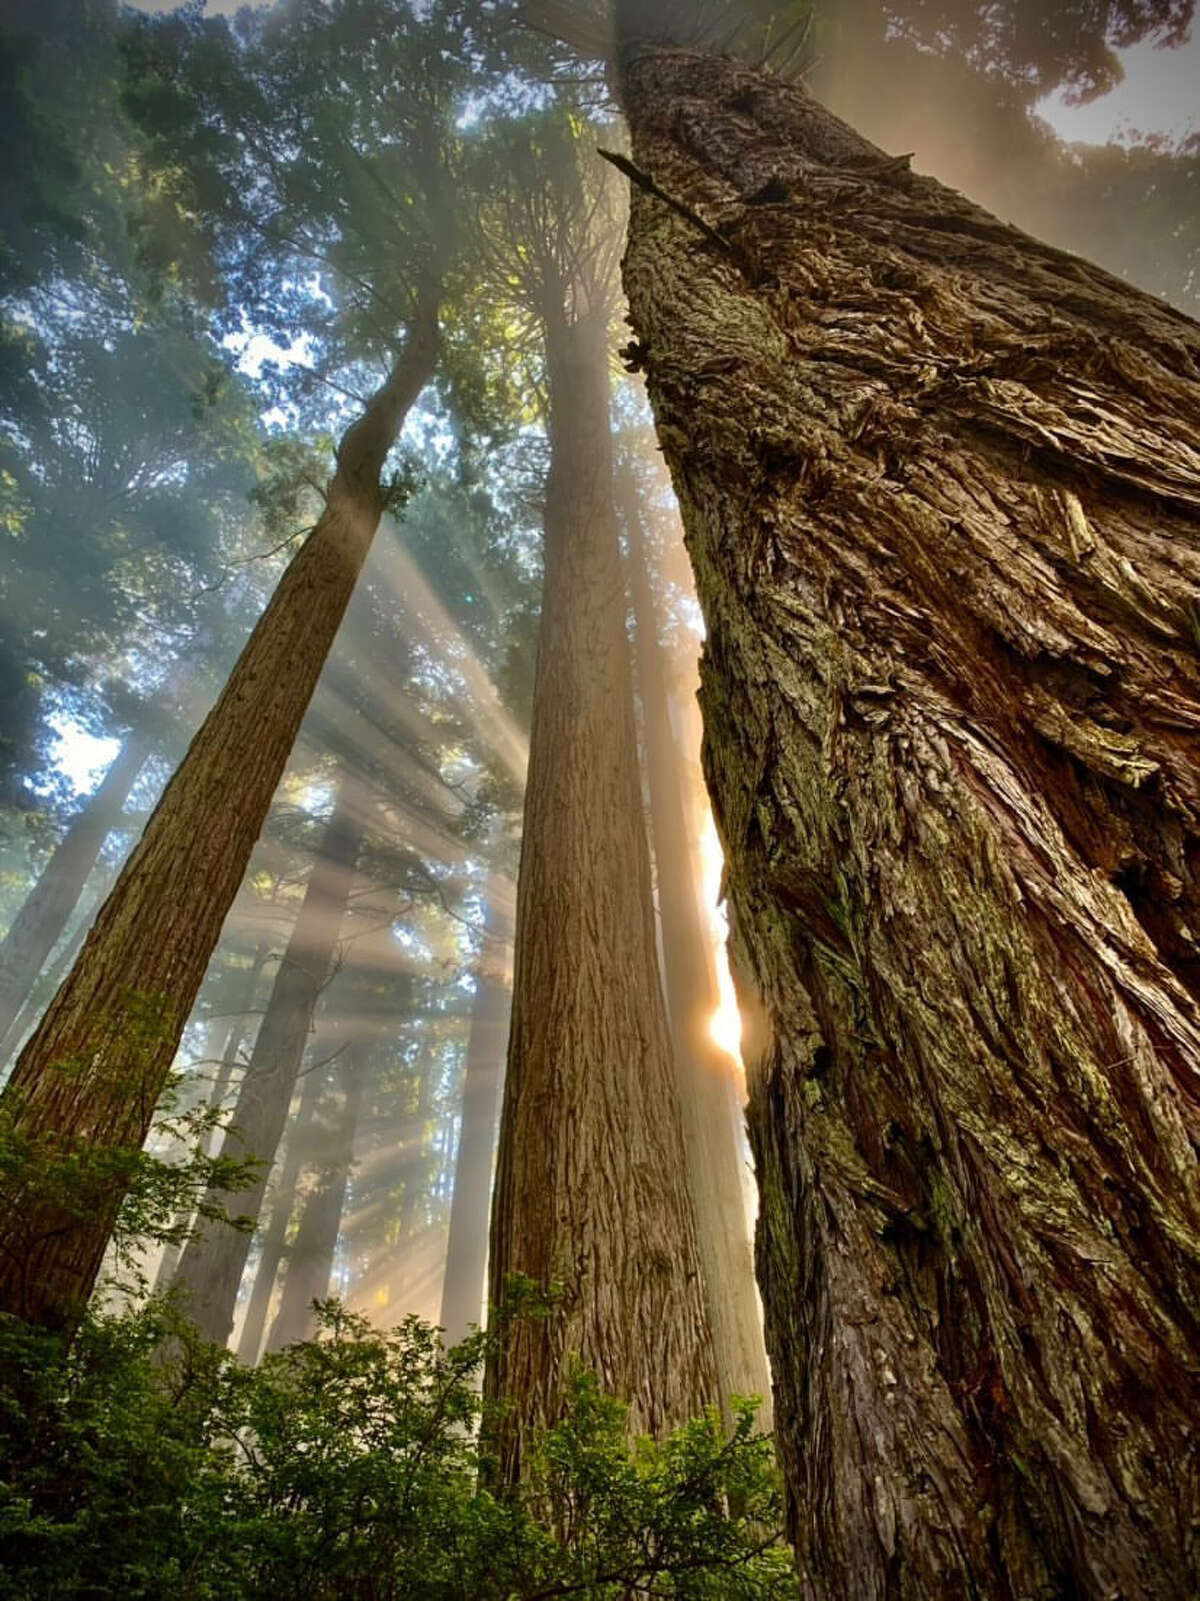 The winding trunks of the sequoias are gray-white by the salty air near the coast.